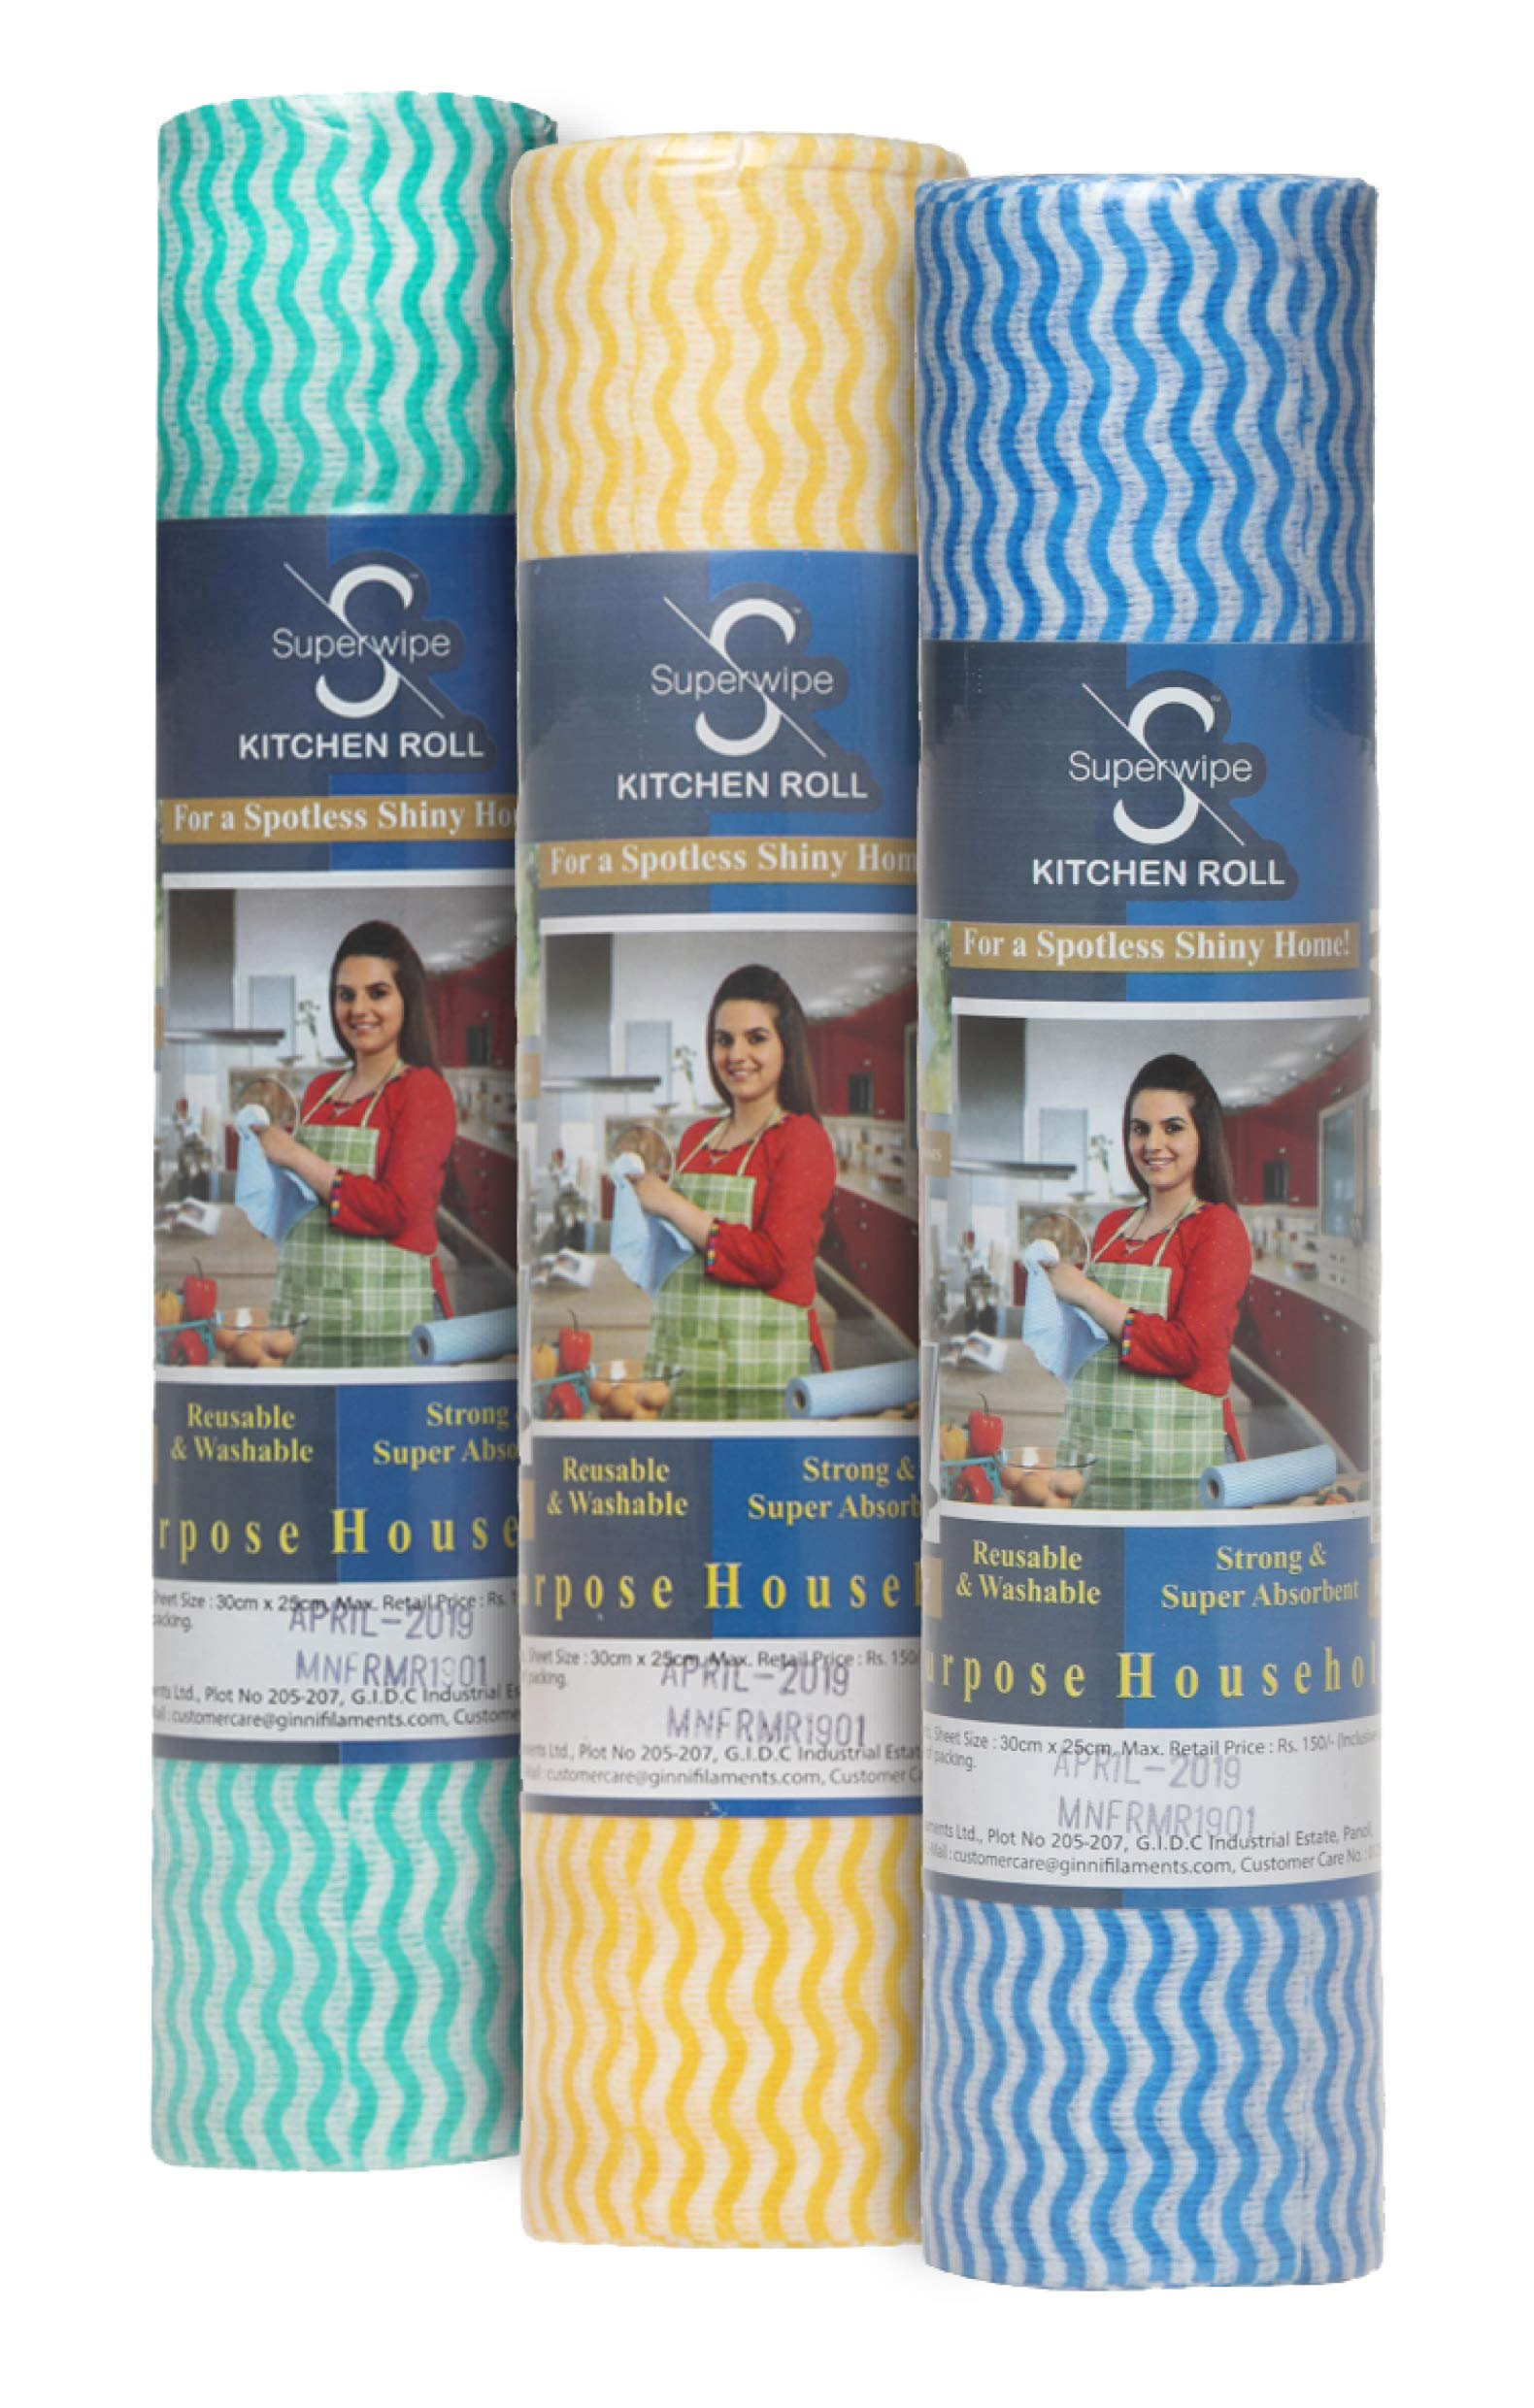 Ginni Kitchen Swipe Rolls Non Woven Fabric 30 X 25 cm Kitchen Tissue/Towel Tissue Roll Reusable & Washable (Multi-Purpose Household Sheets) - 3 Rolls (50 Pulls Per Roll) product image